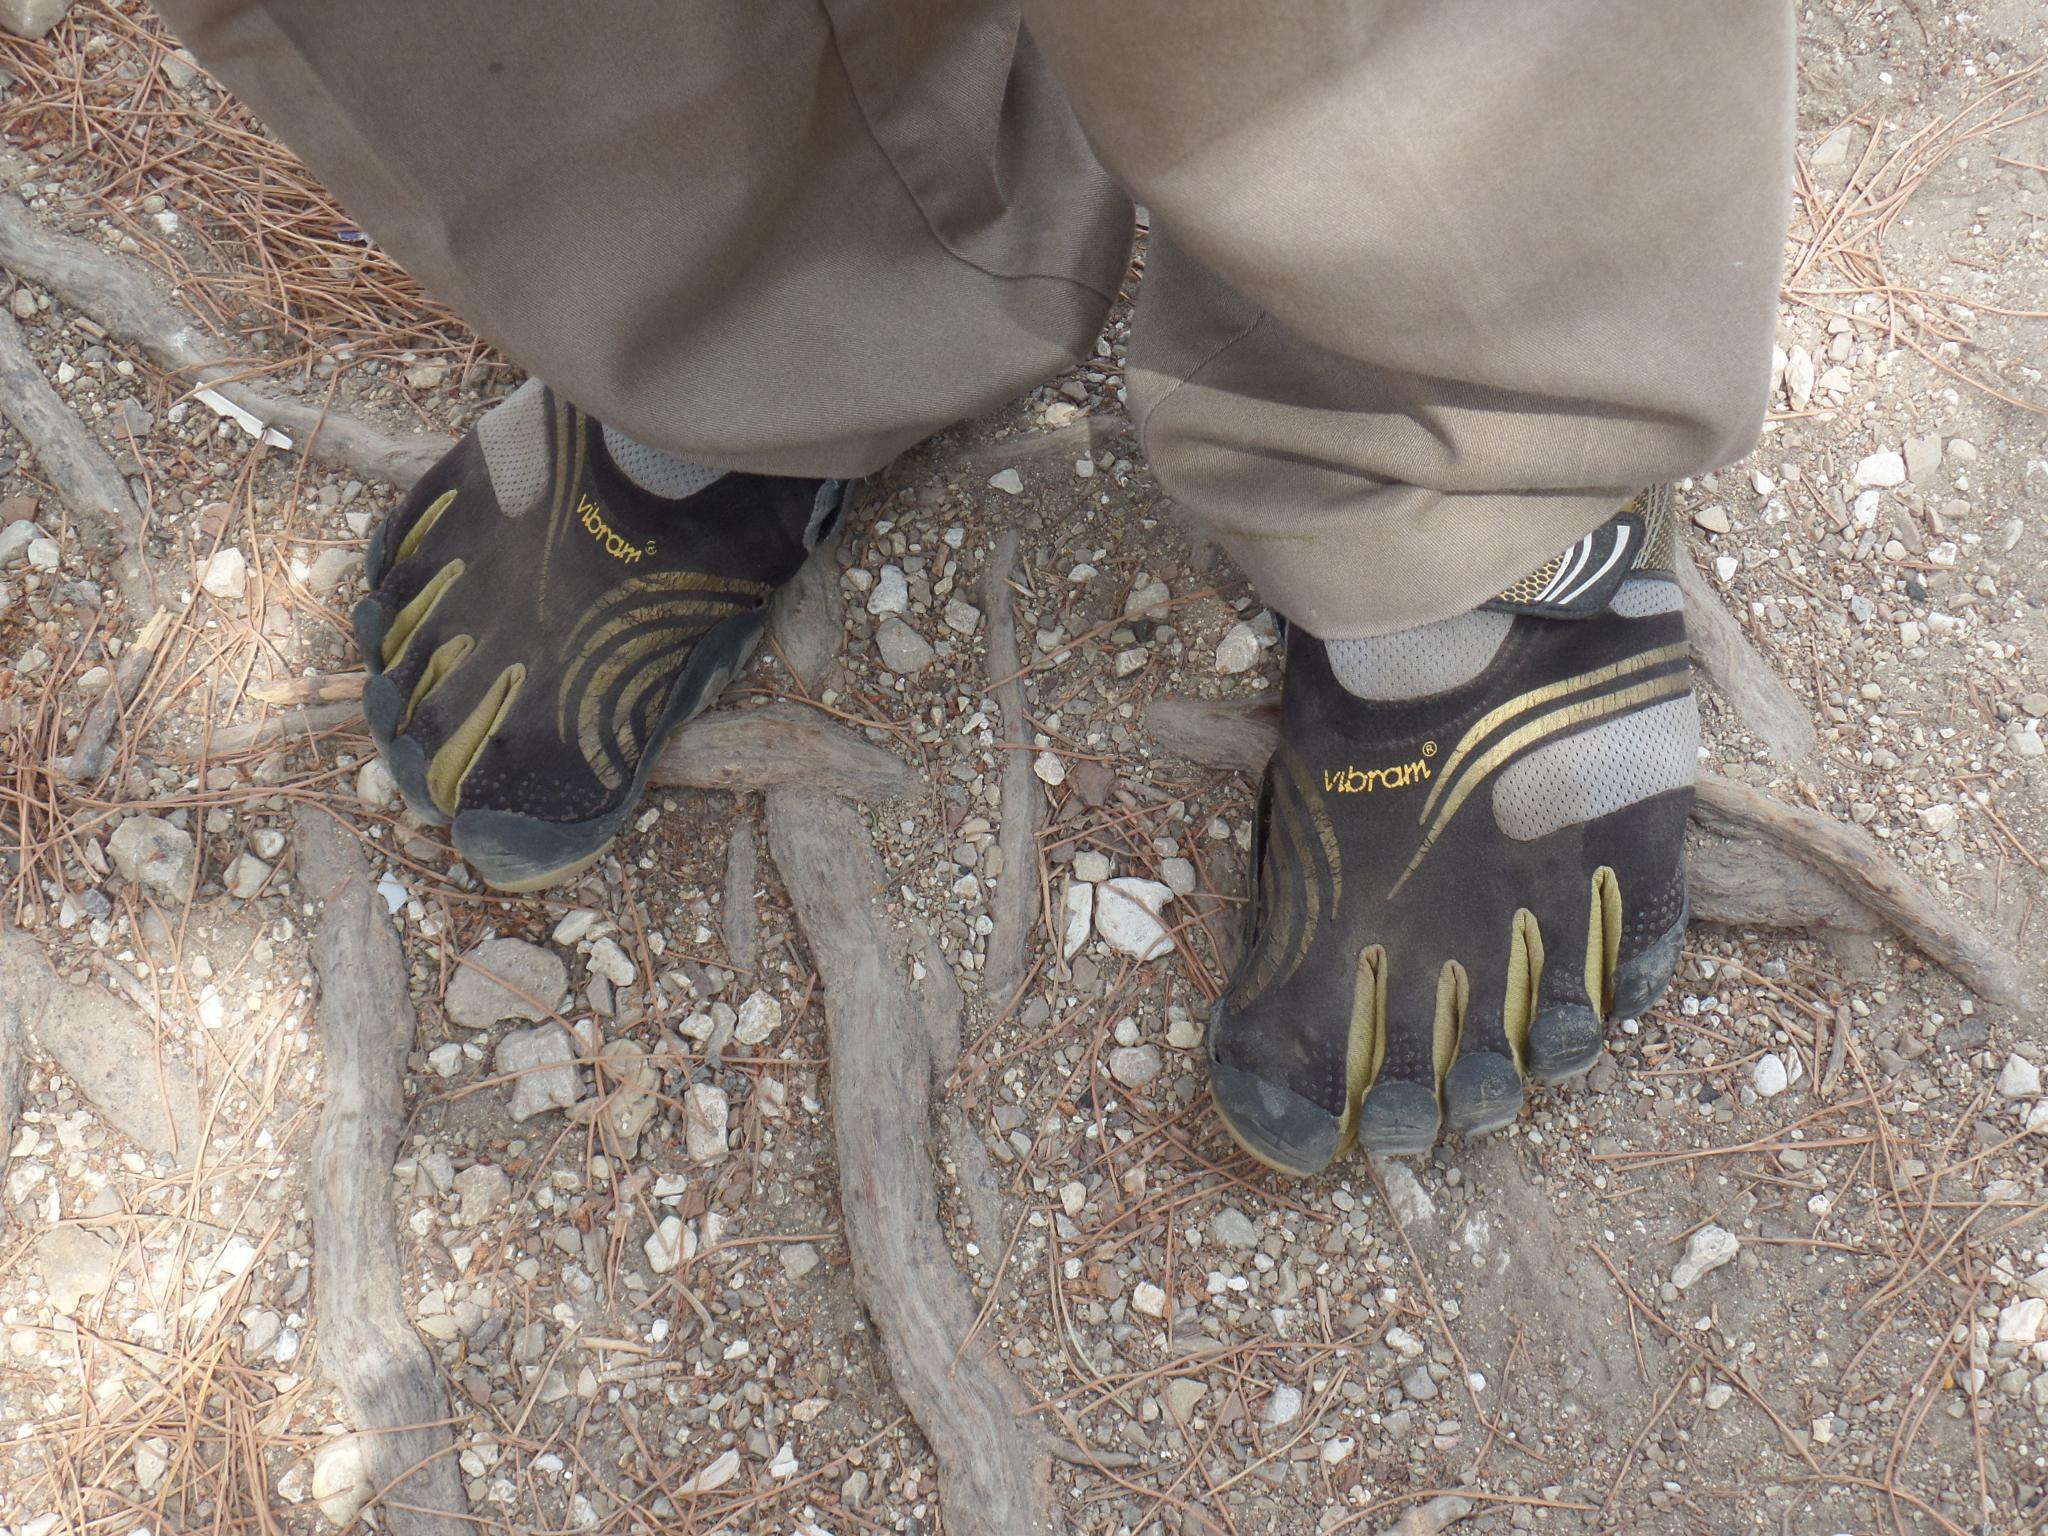 A Tourist Guide with Gorilla Spirit (and shoes) by Francine Waterman